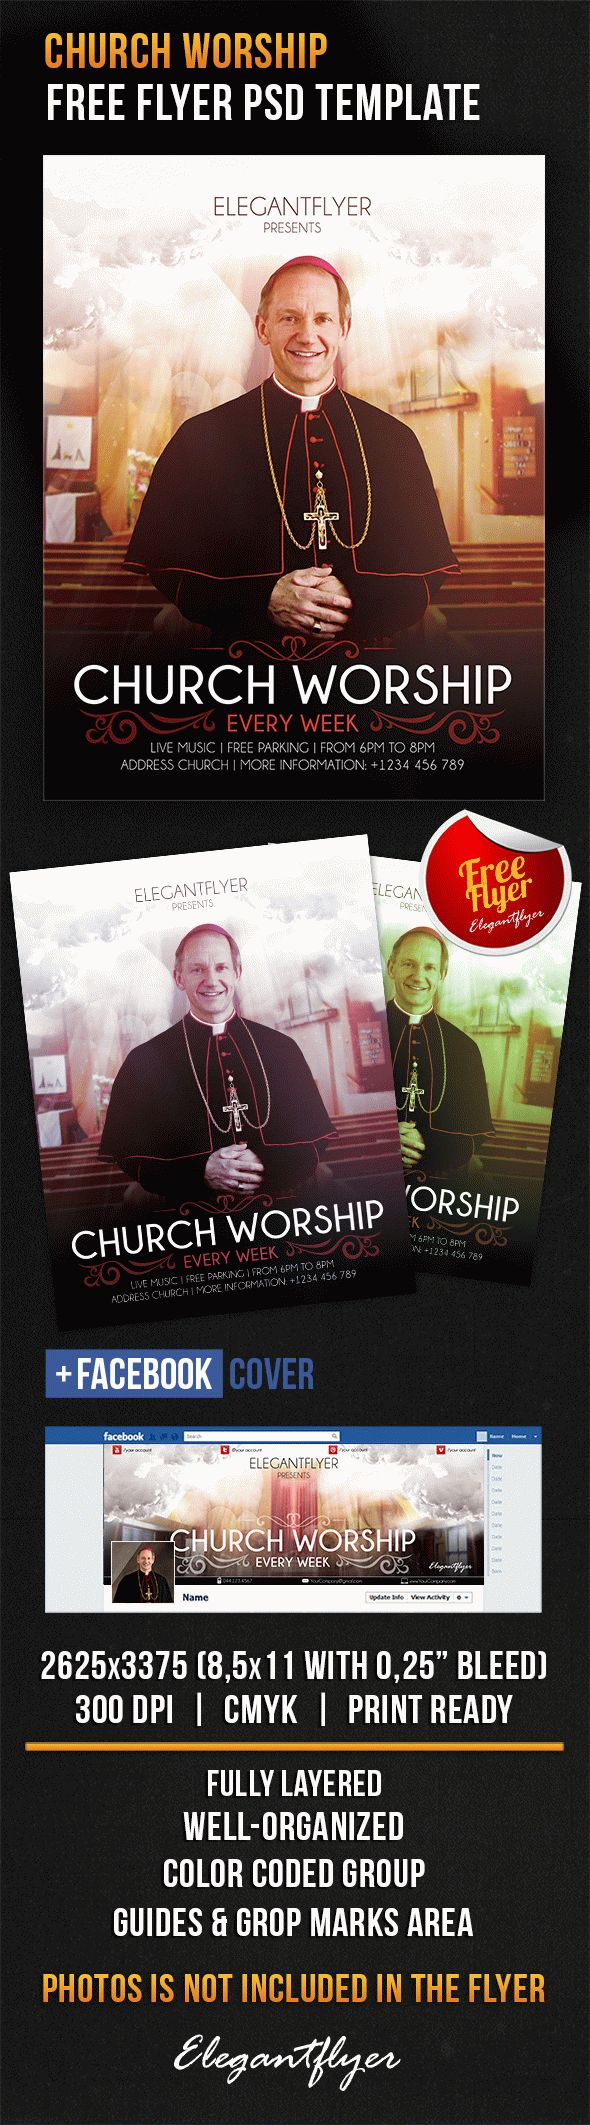 Church Worship – Free Flyer PSD Template